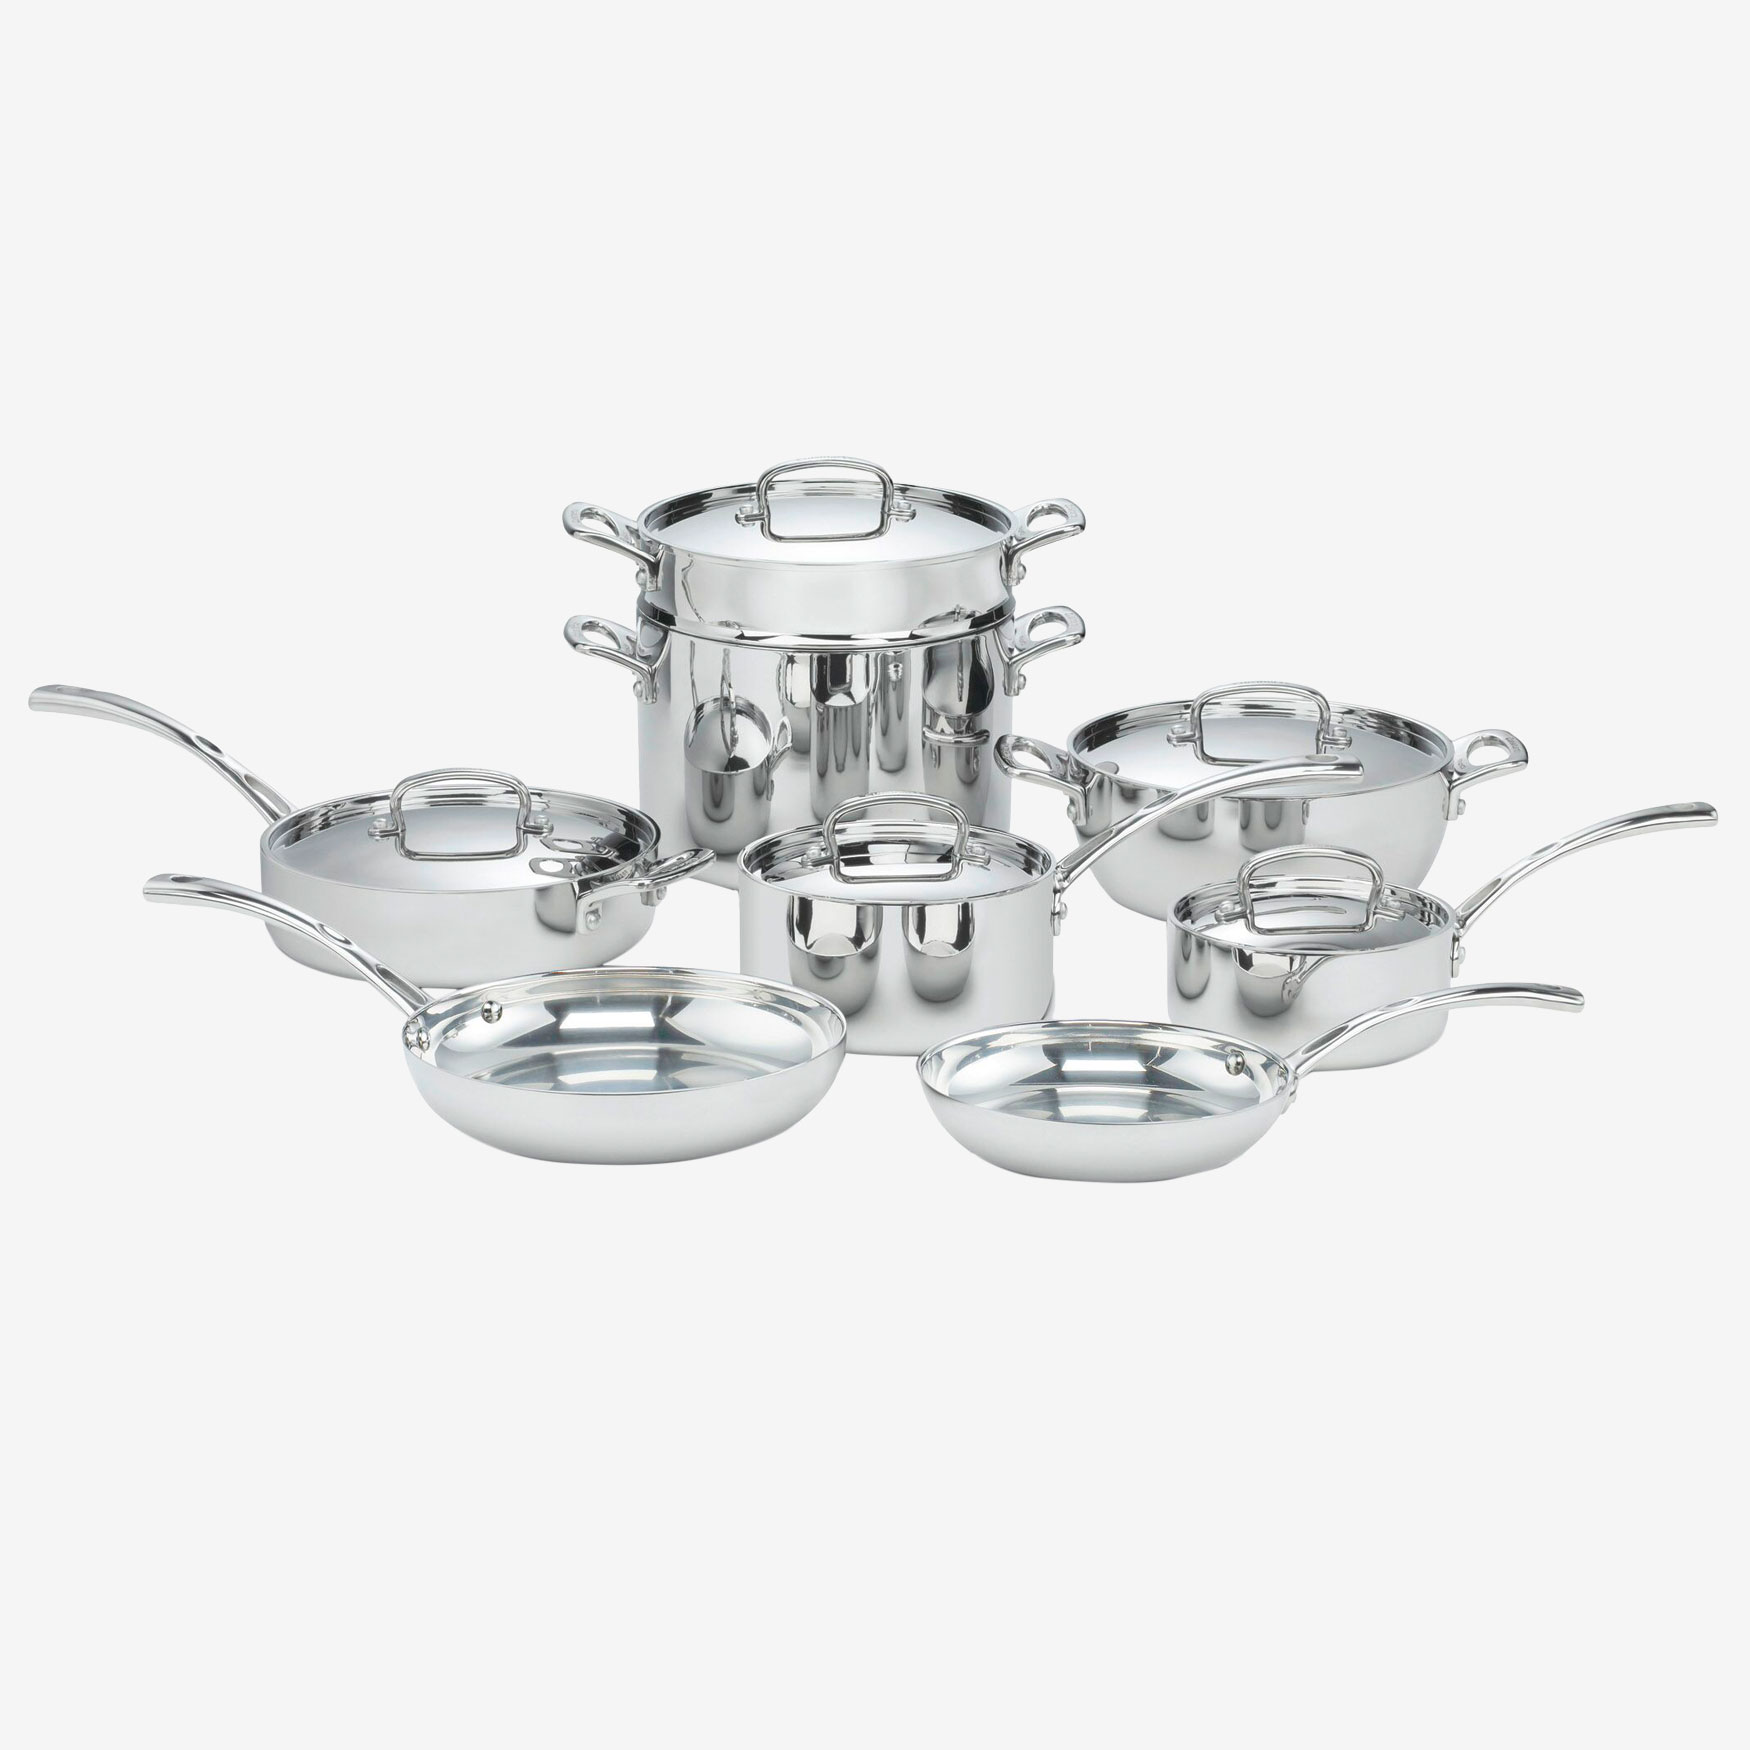 Cuisinart French Classic Tri-Ply Stainless 13-Pc. Cookware Set, STAINLESS STEEL